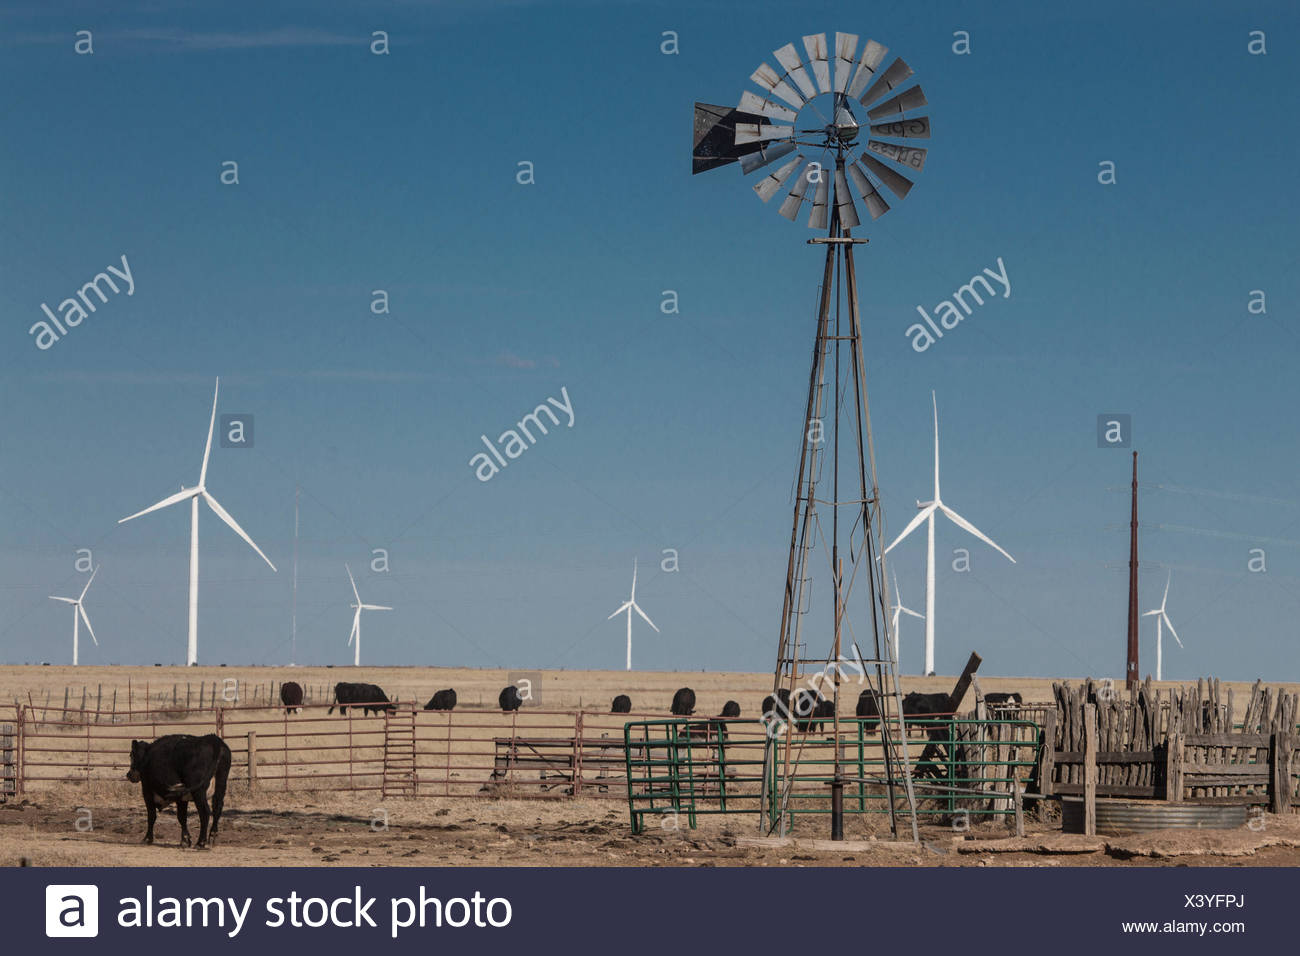 An old style windmill draws water for cattle and horses, as wind generators in background create electricity. - Stock Image